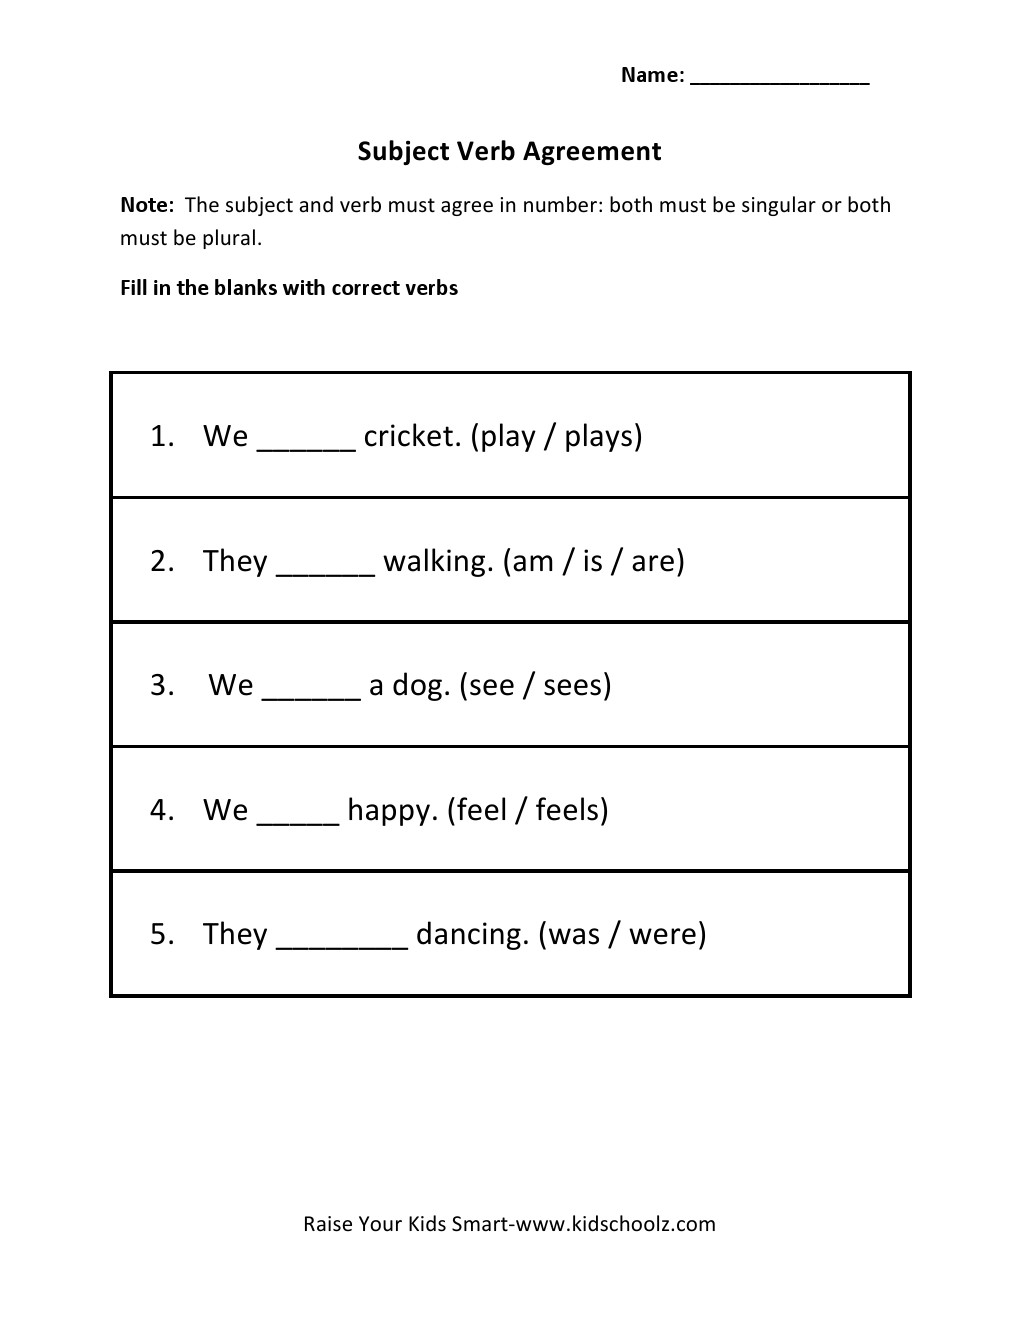 worksheet Subject And Verb Agreement Worksheets grade 3 subject verb agreement worksheet 5 kidschoolz worksheet